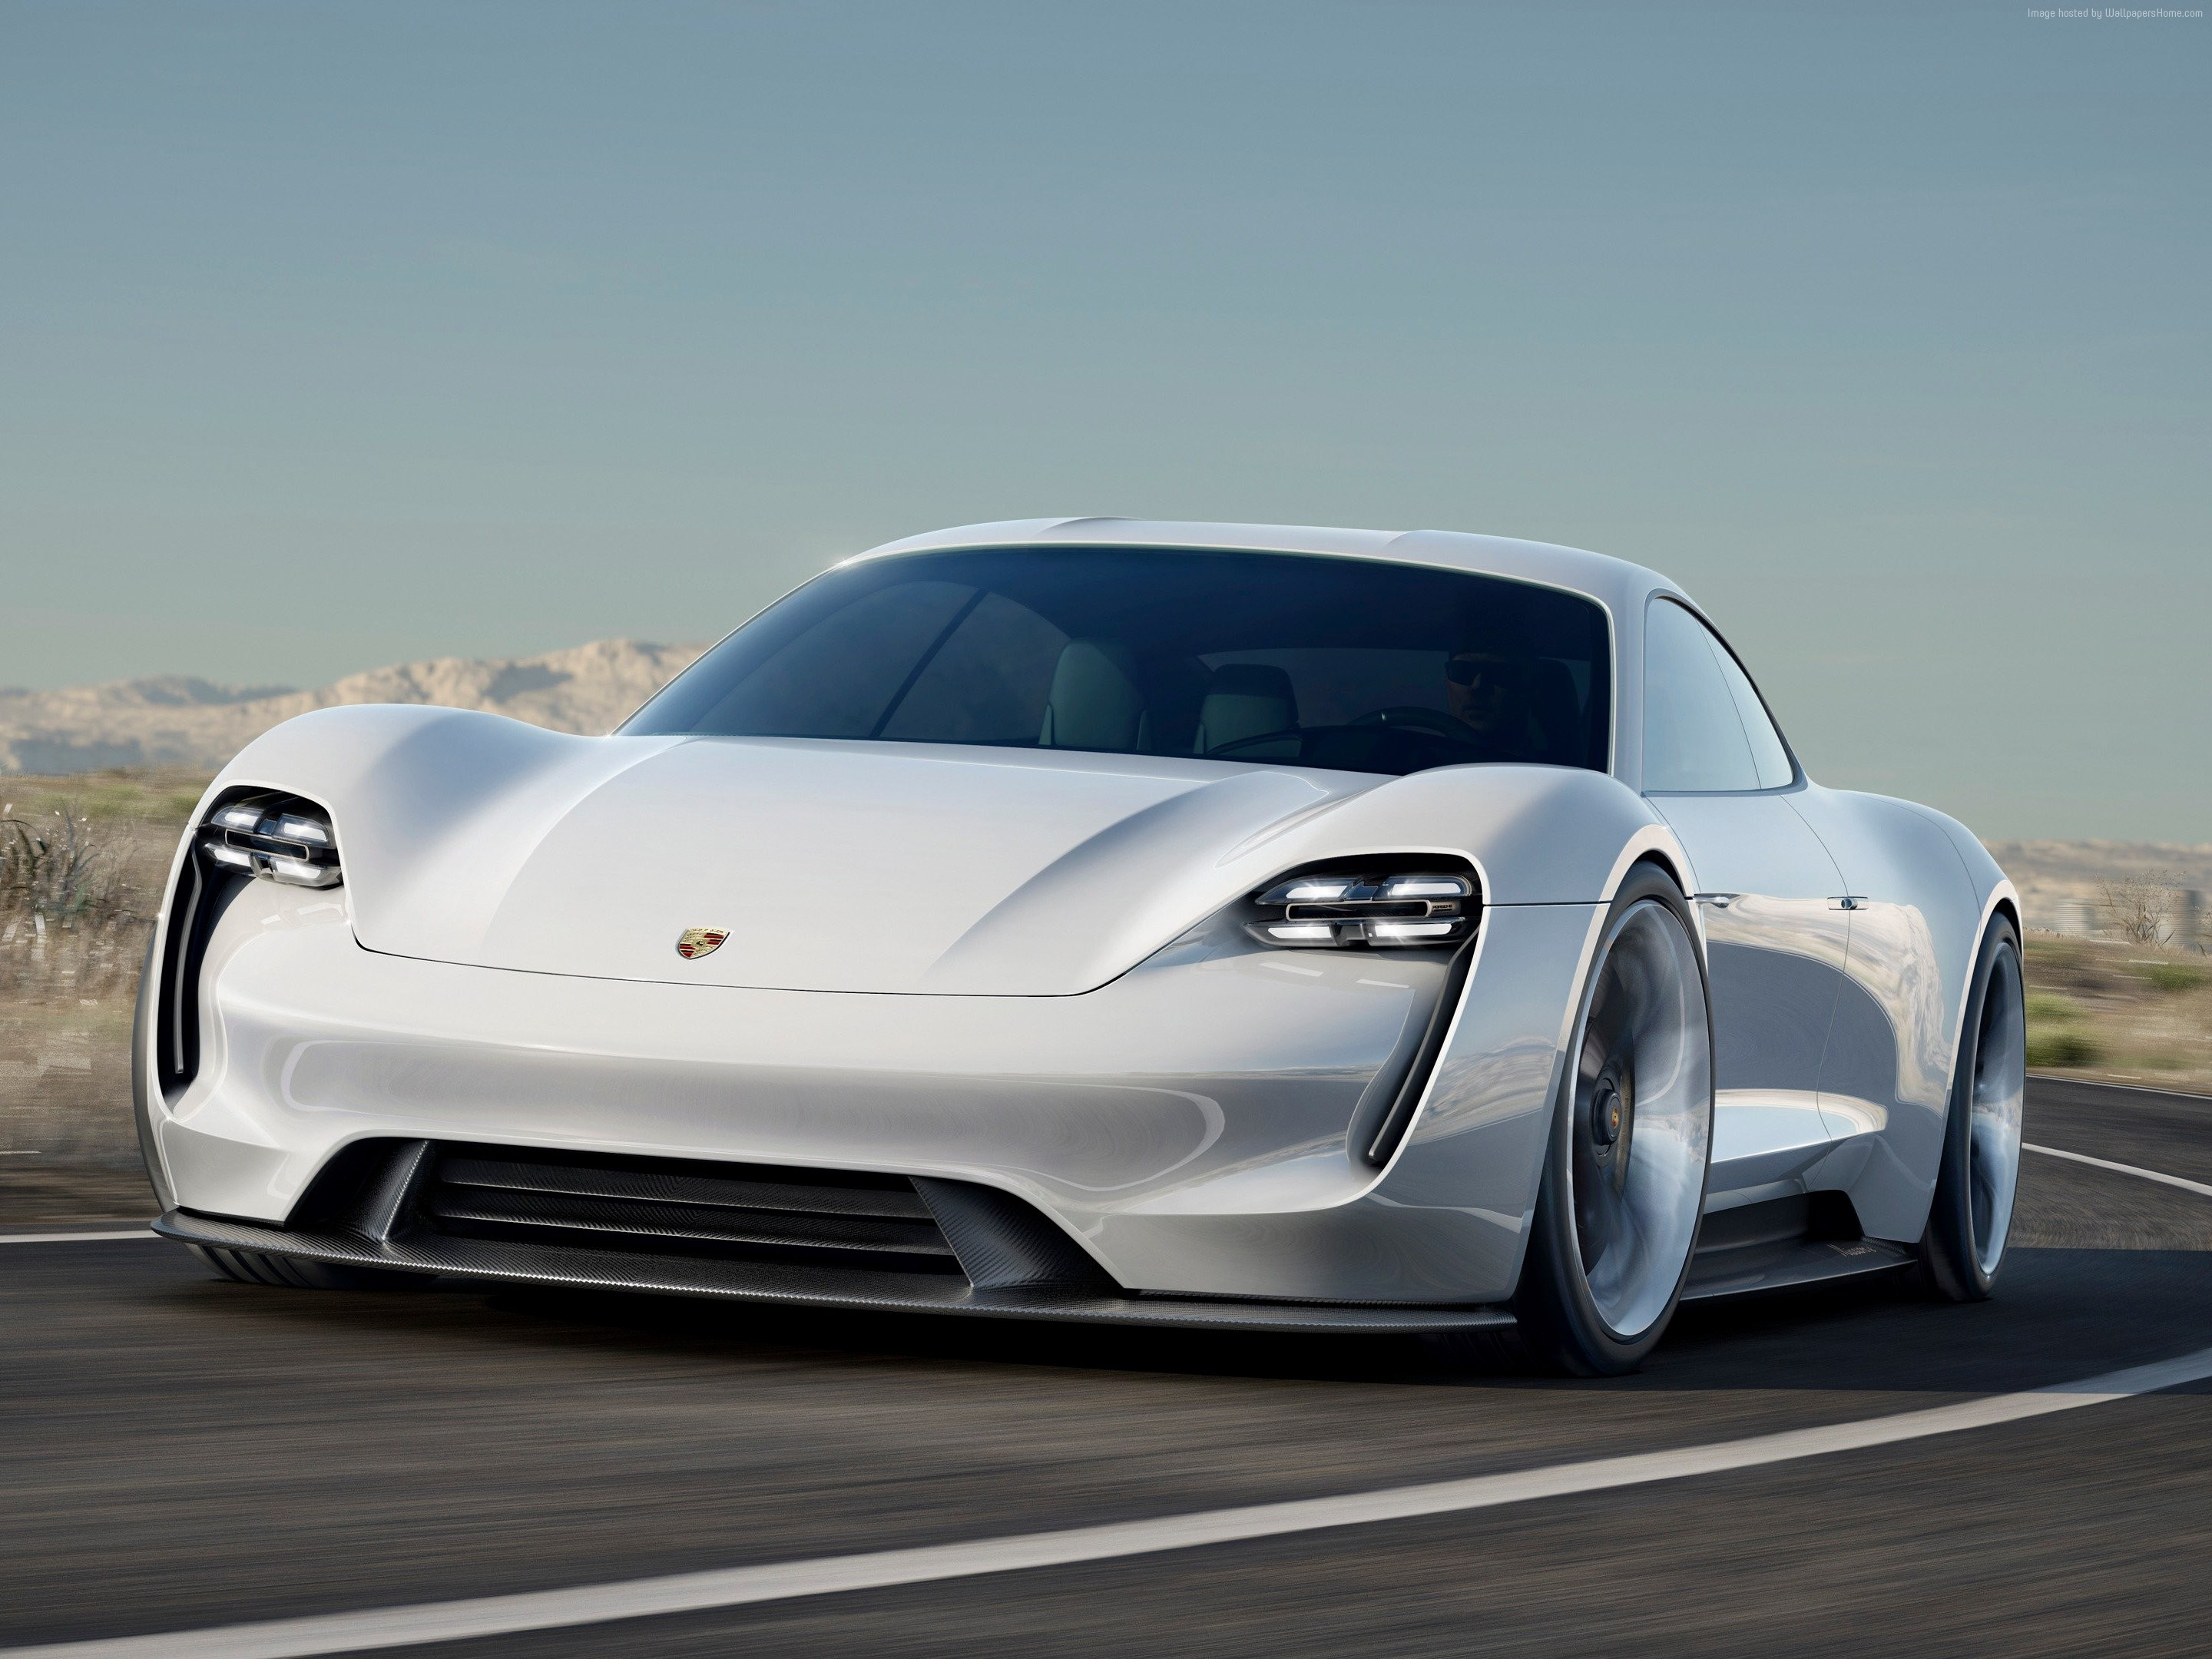 100816 white Porsche Taycan 800v supercar Electric Cars 2880x2160